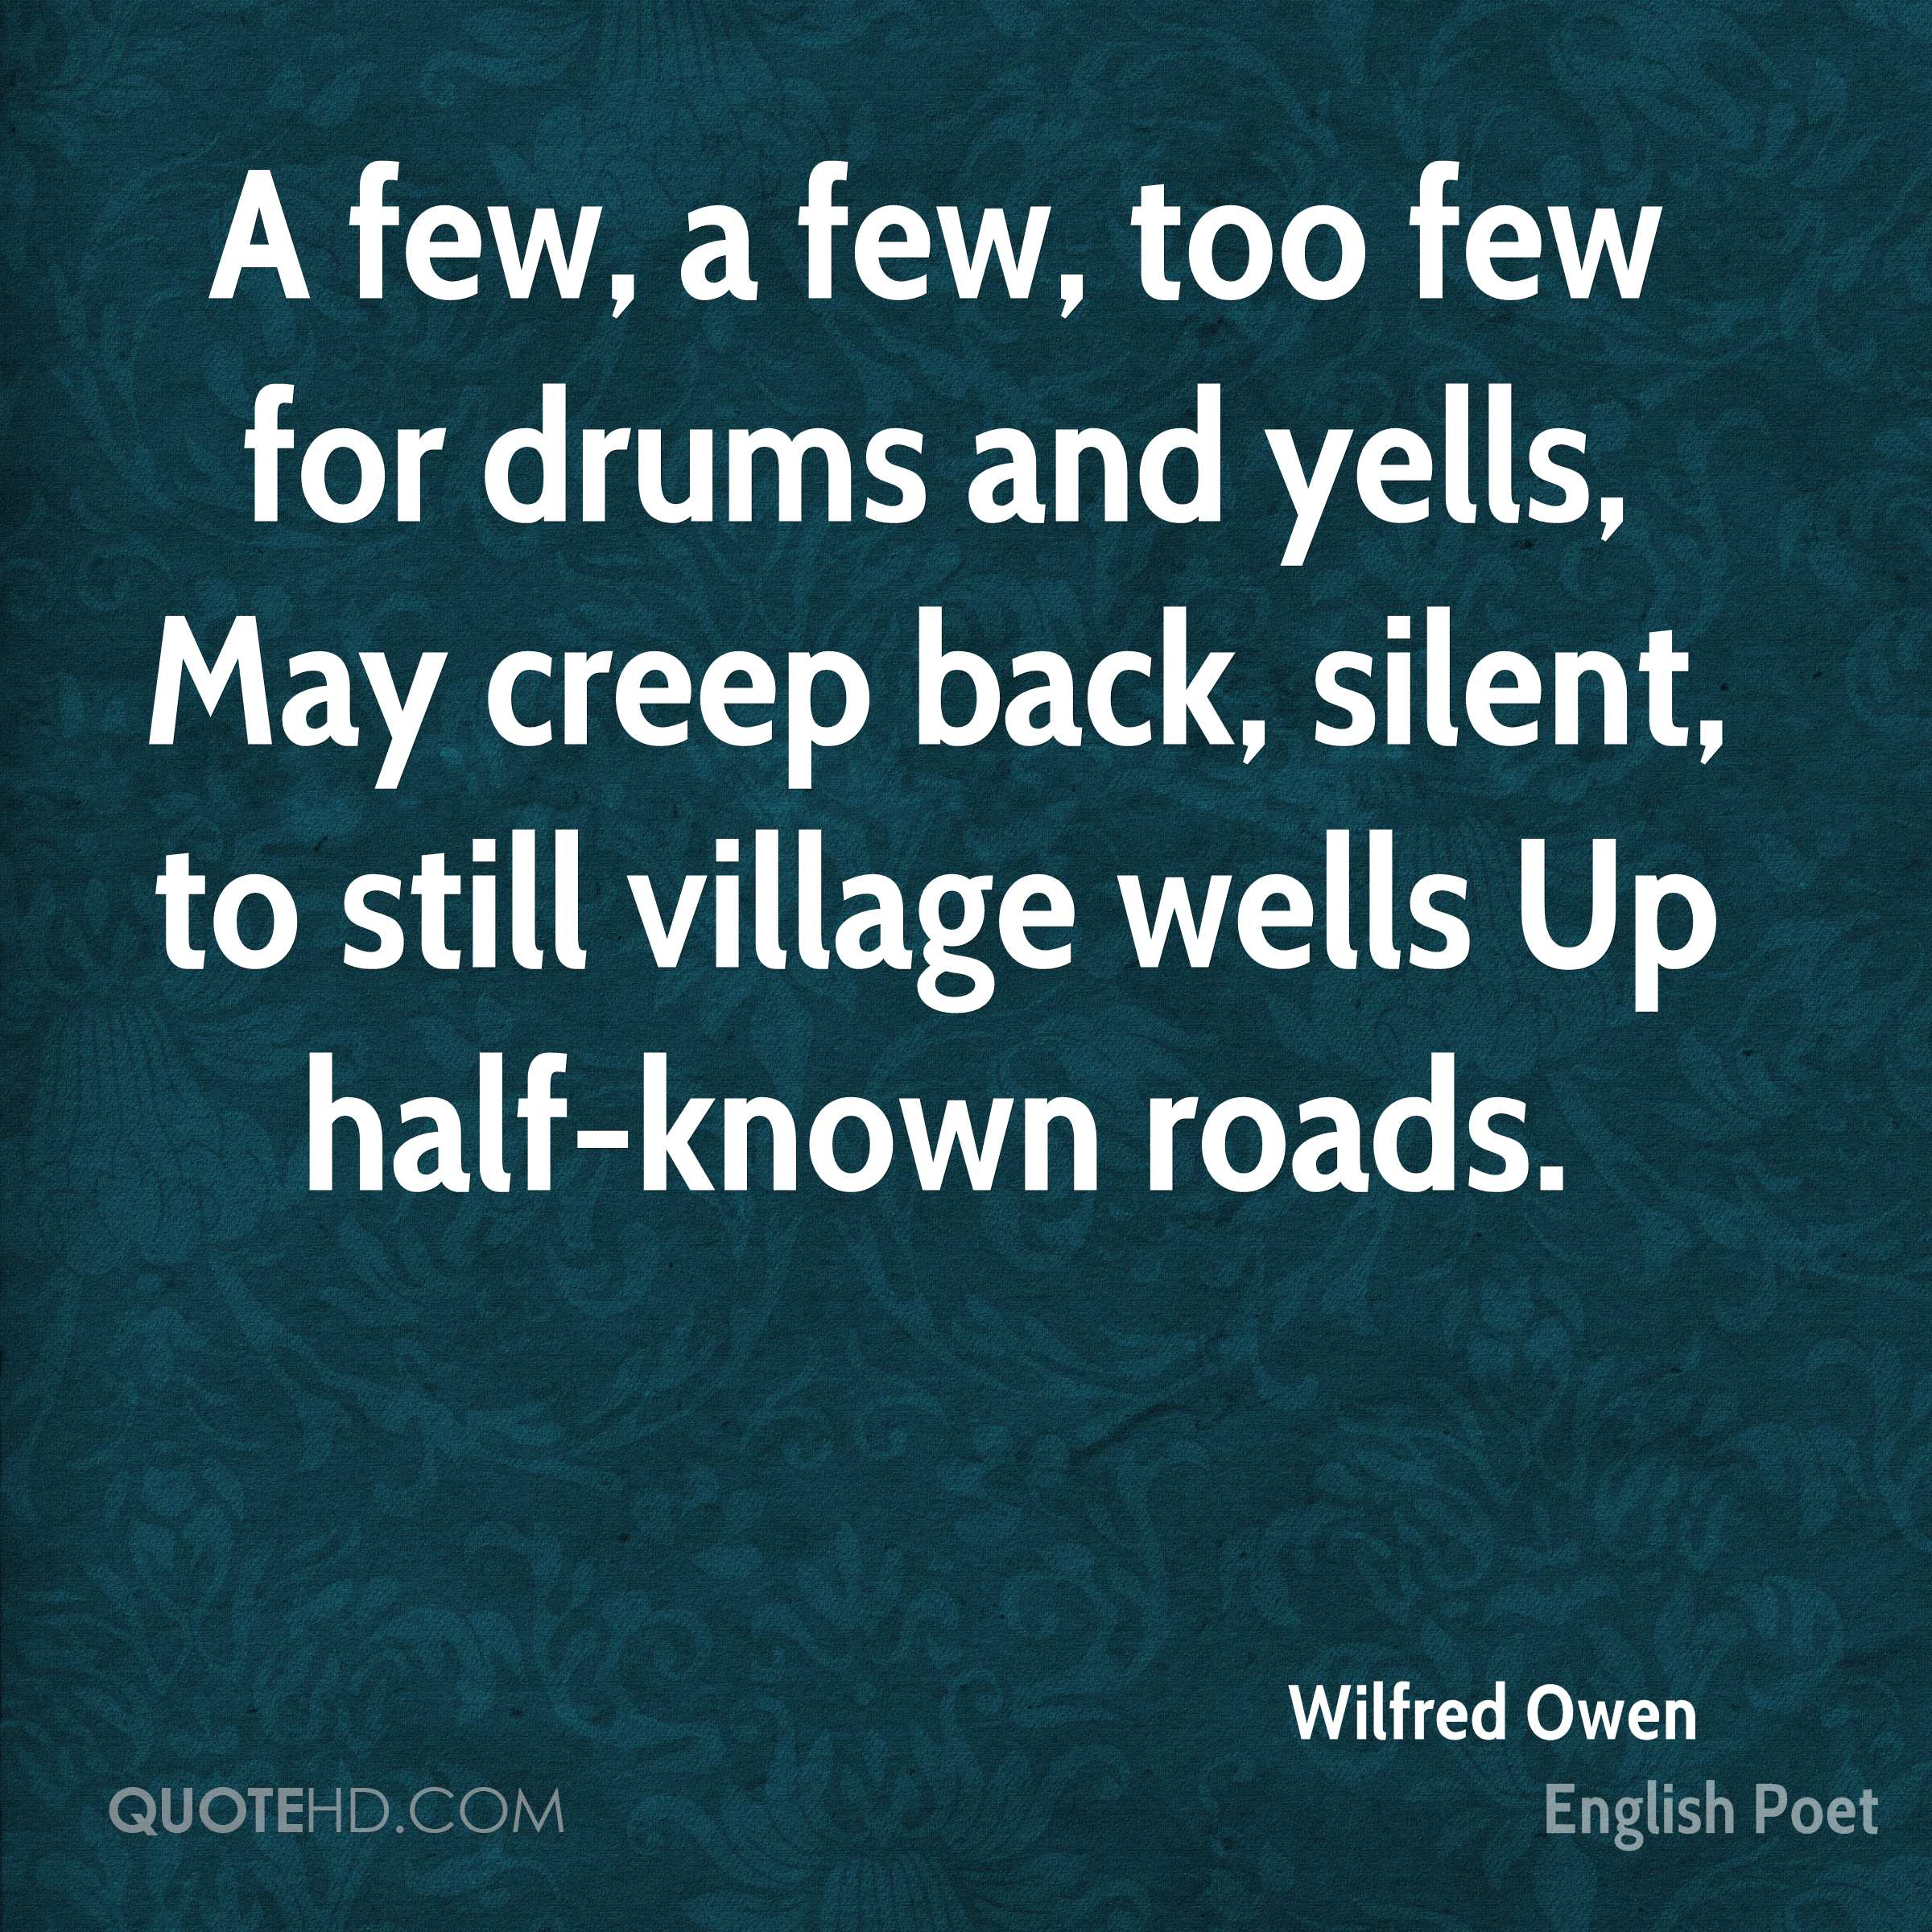 A few, a few, too few for drums and yells, May creep back, silent, to still village wells Up half-known roads.